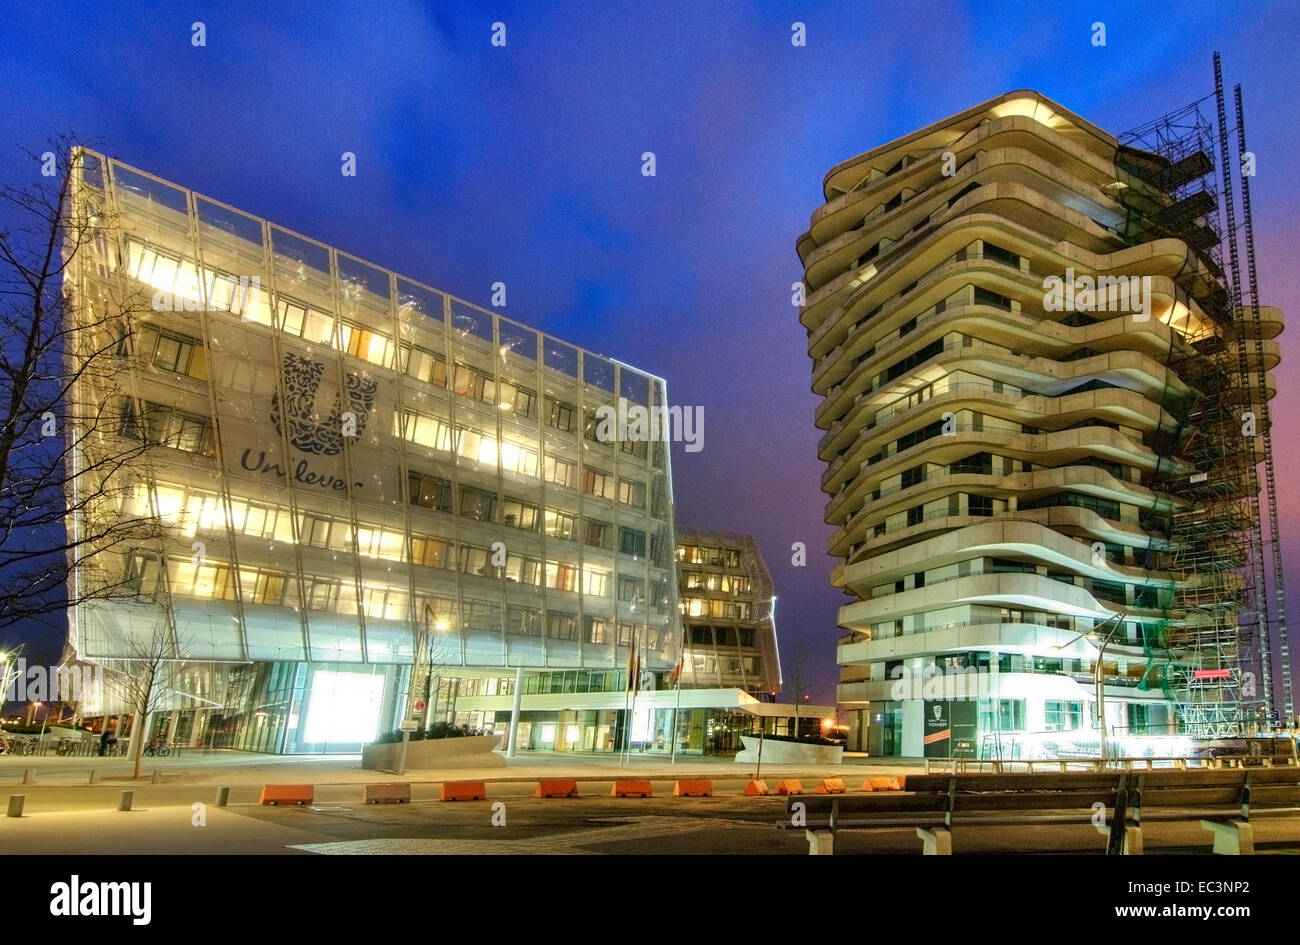 Unilever Building and Marco Polo Tower in Hamburg Hafencity, Germany - Stock Image